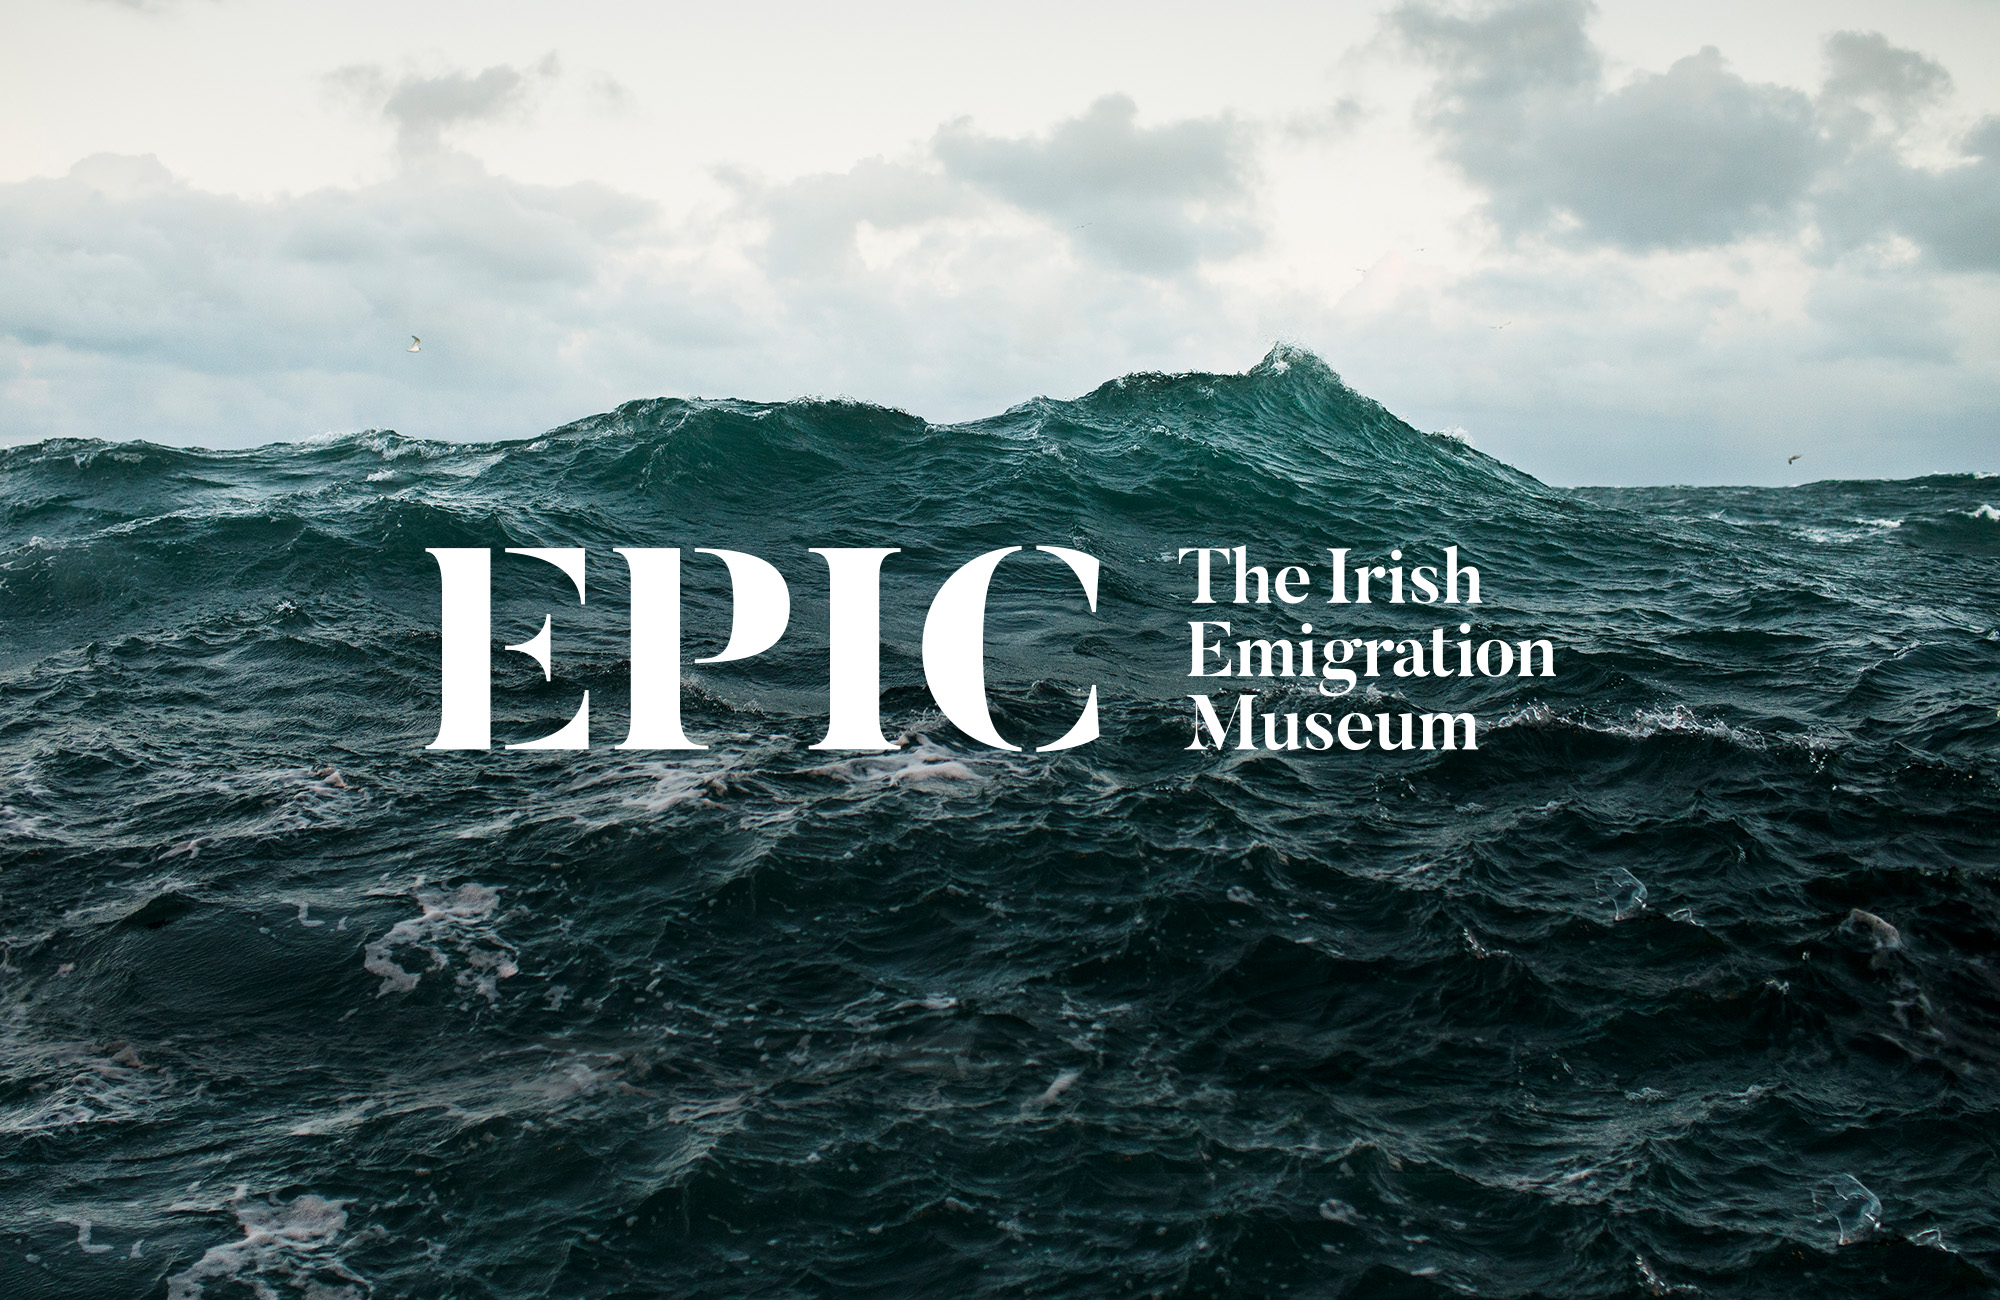 Cover image: EPIC The Irish Emigration Museum — Visual Identity